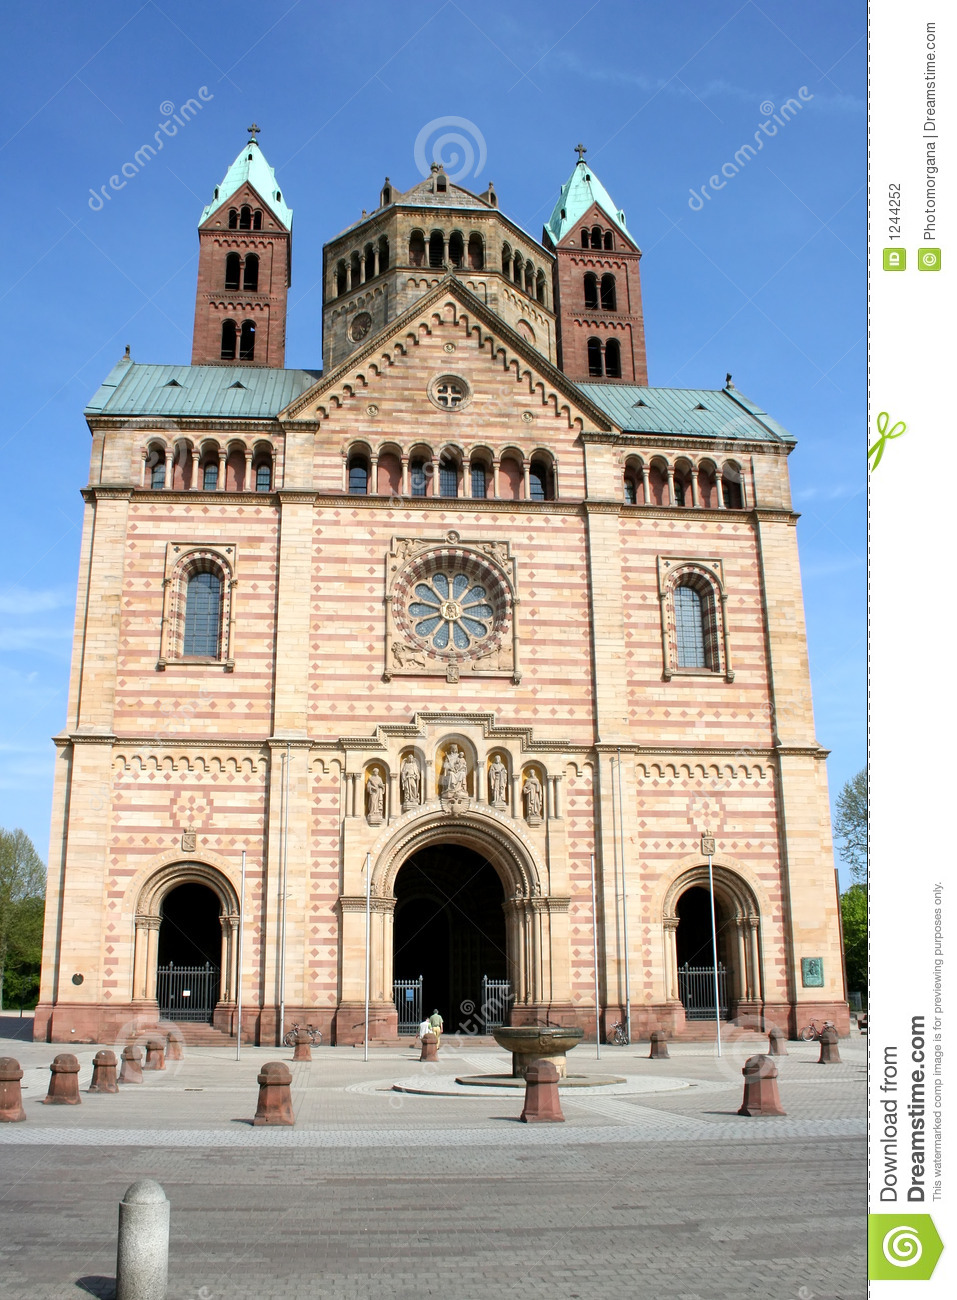 Kathedraal in Speyer